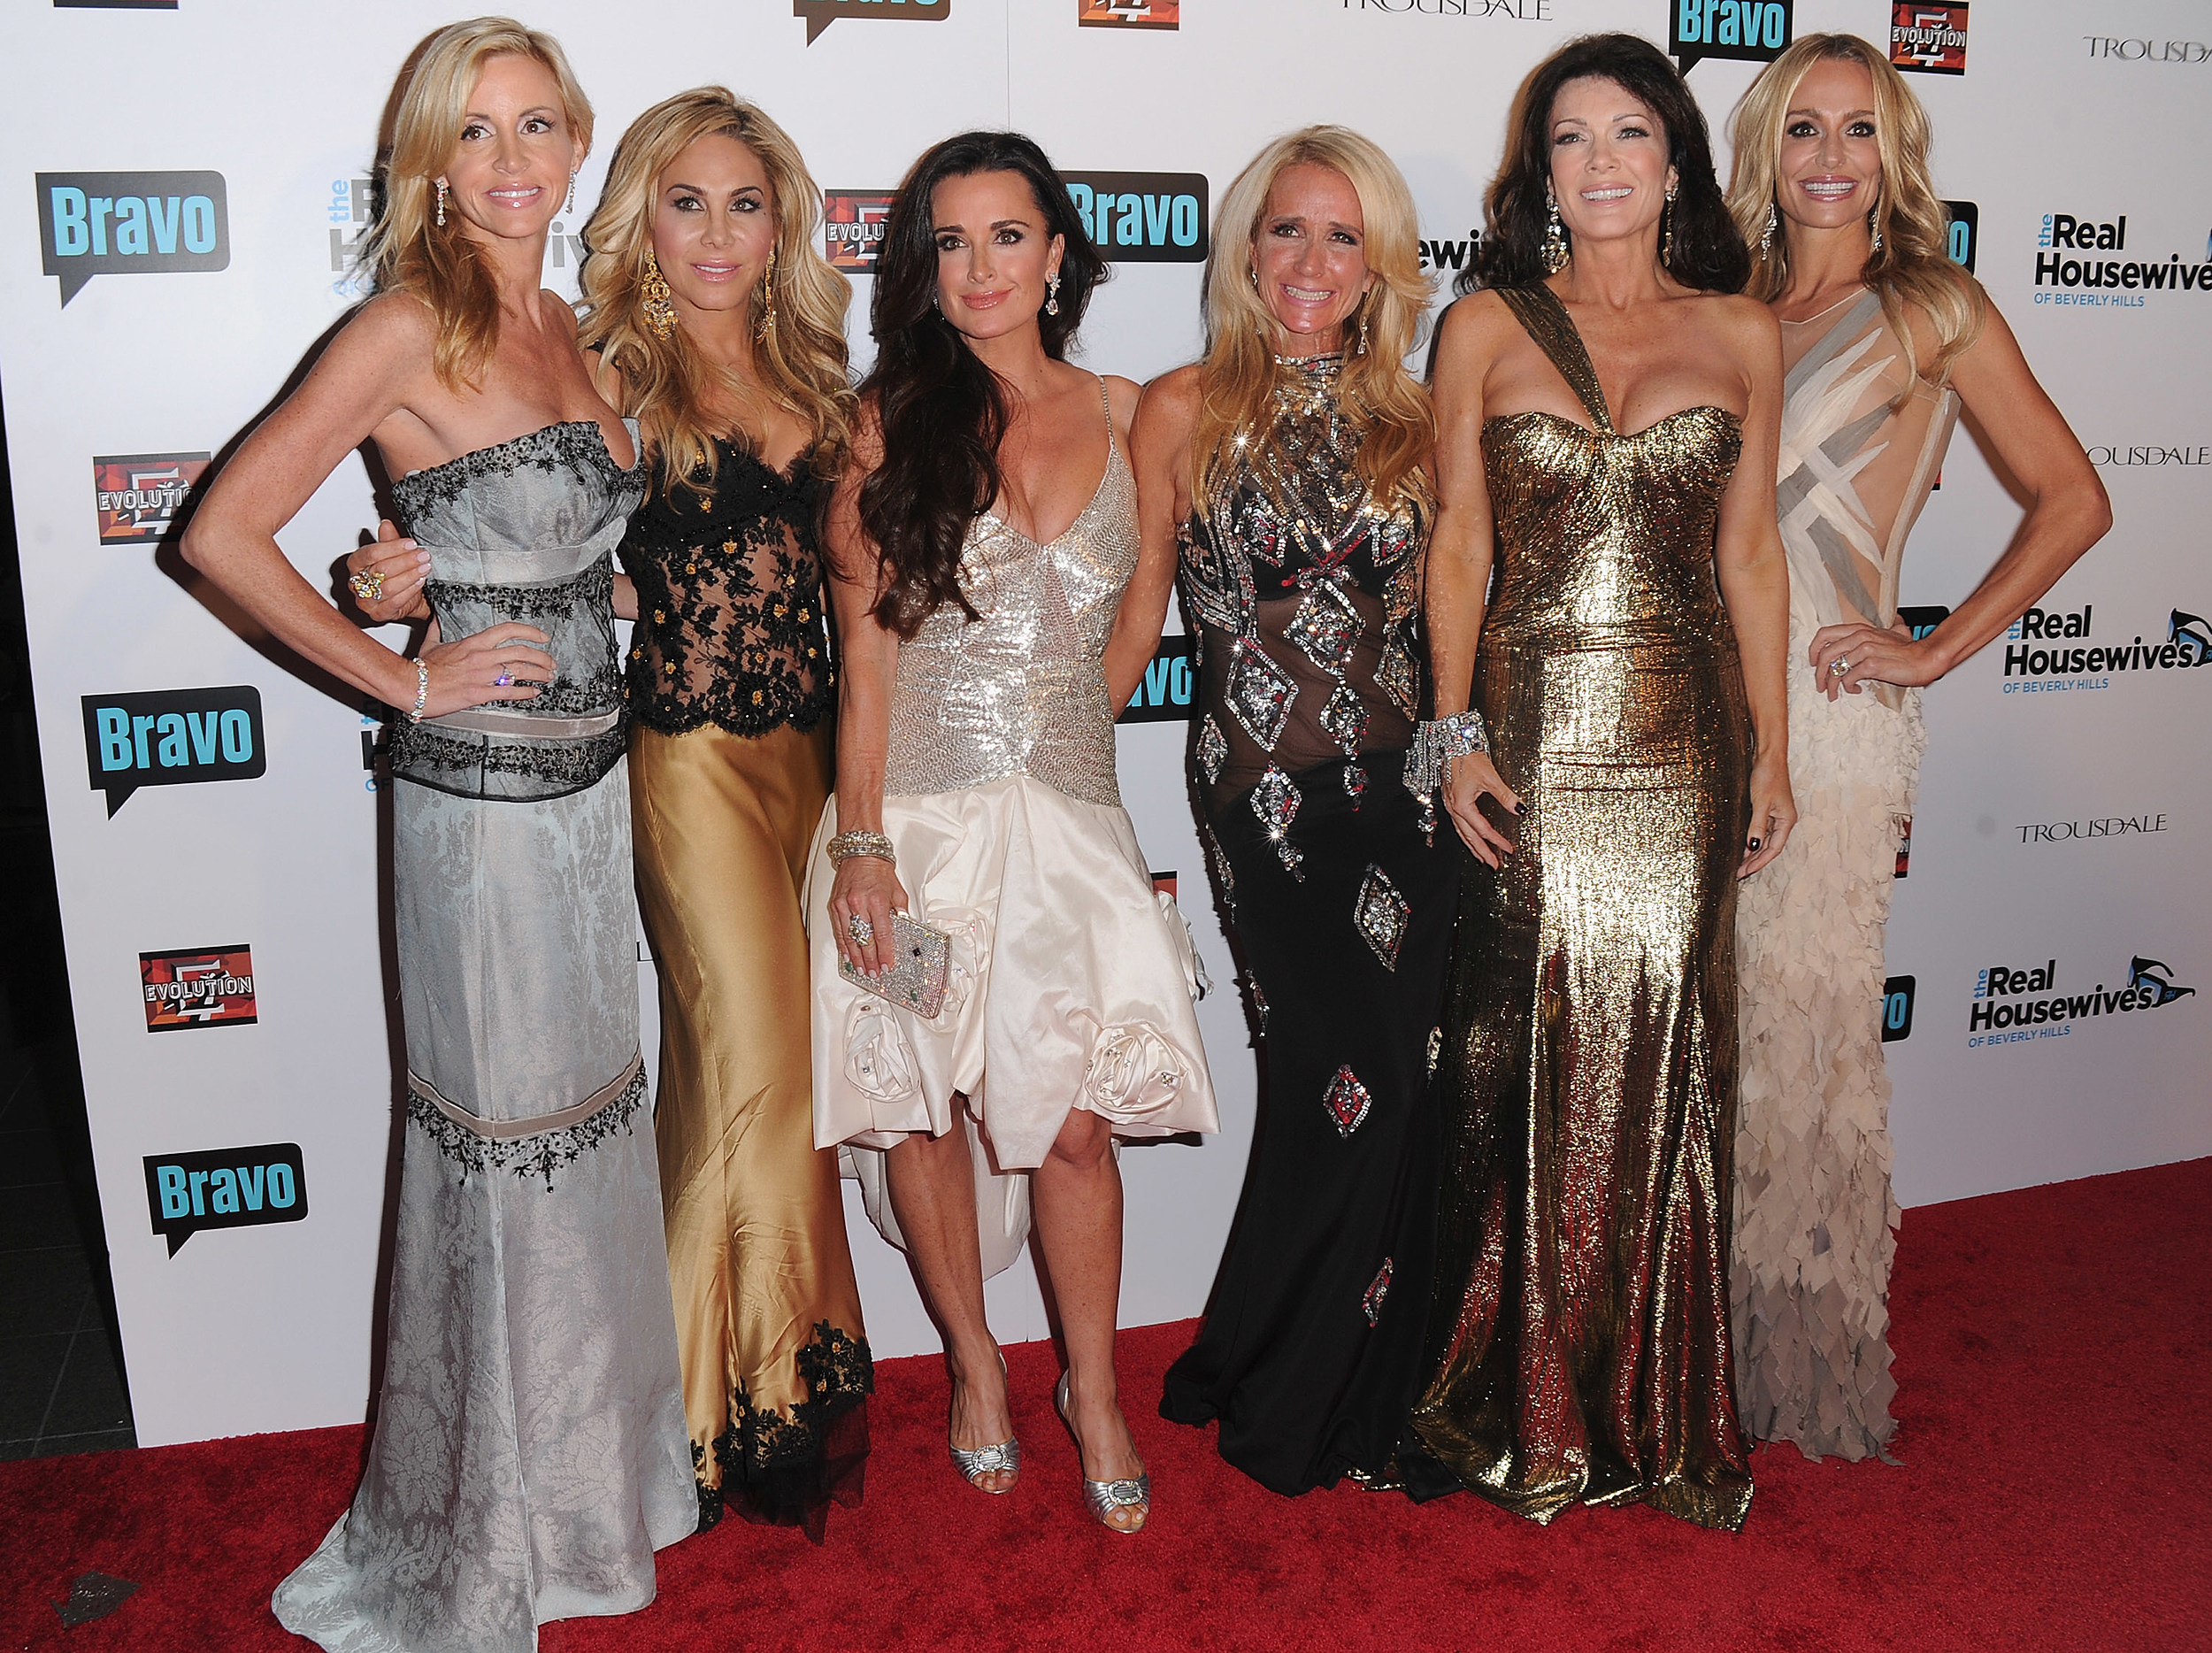 Real Housewives Of Beverly Hills Season 2 Cast Revealed